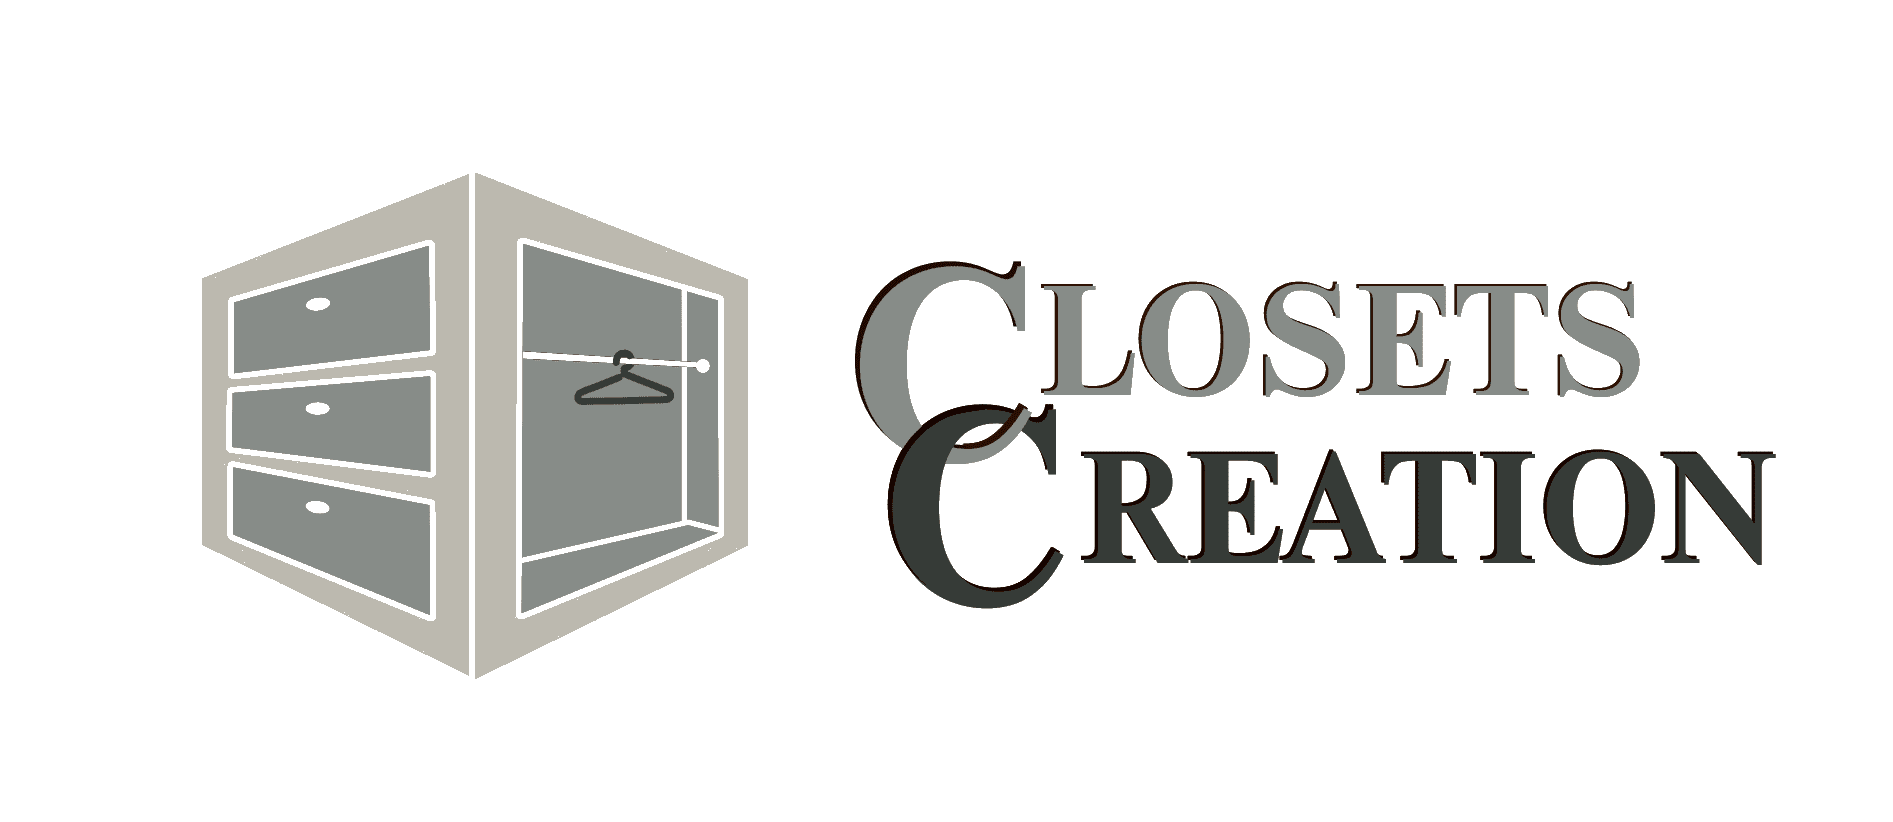 Closets Creation